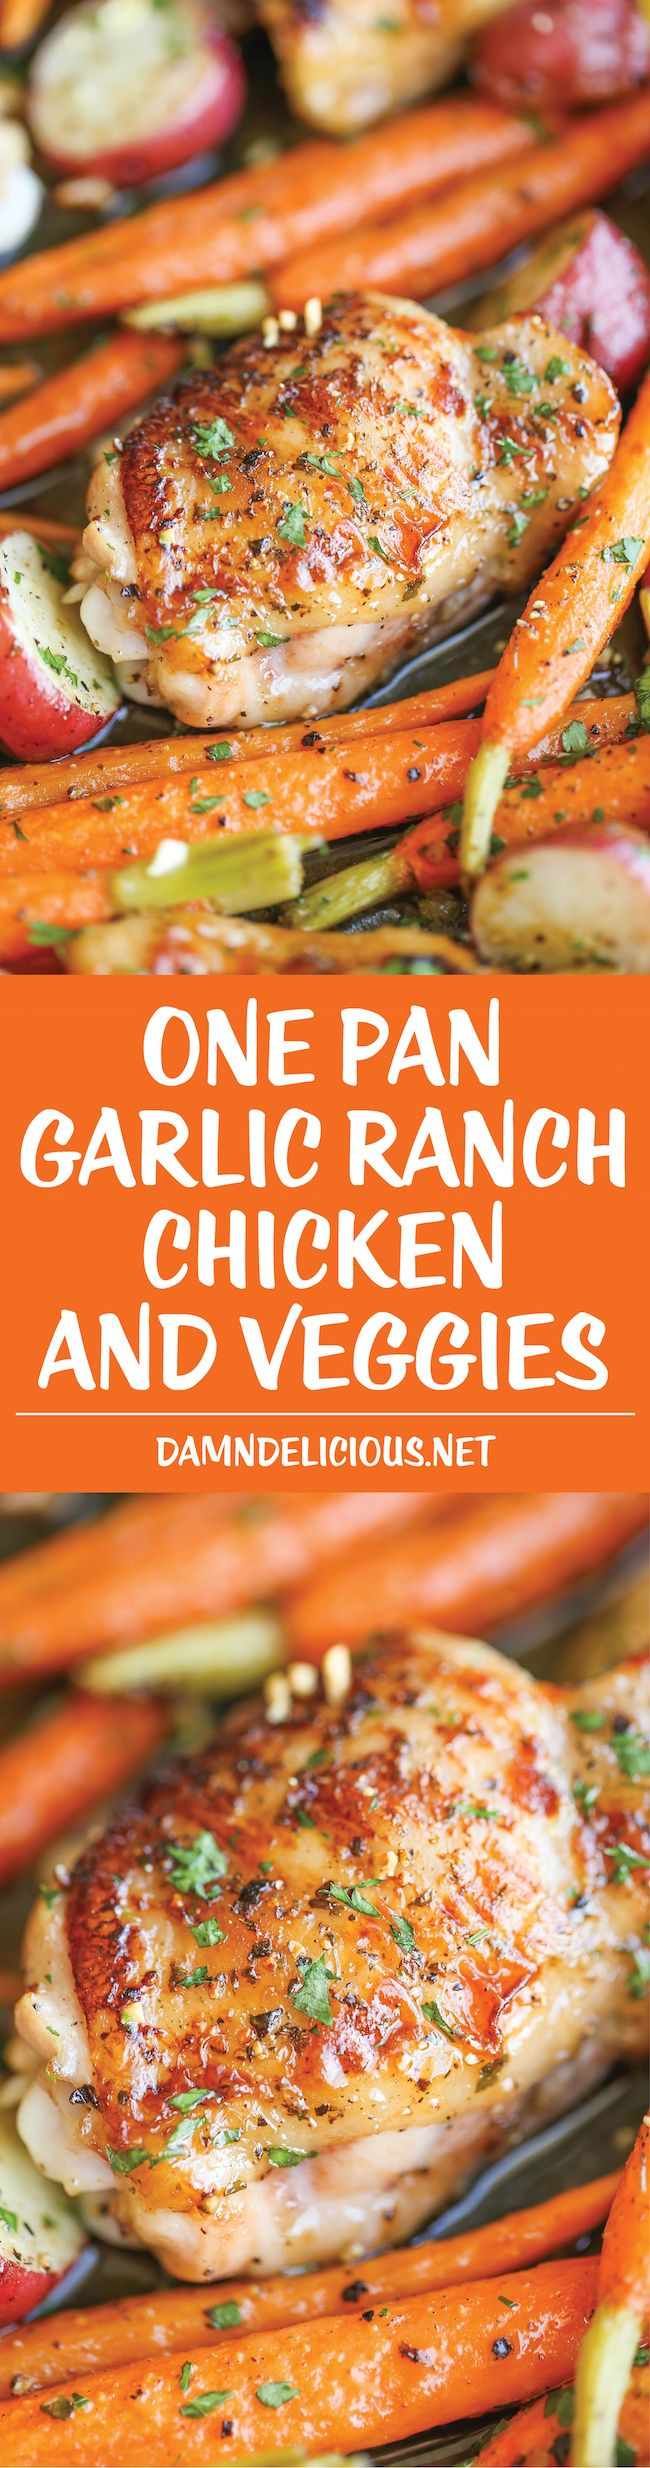 One Pan Garlic Ranch Chicken and Veggies – Crisp-tender chicken baked to absolute perfection with roasted carrots and potatoes –